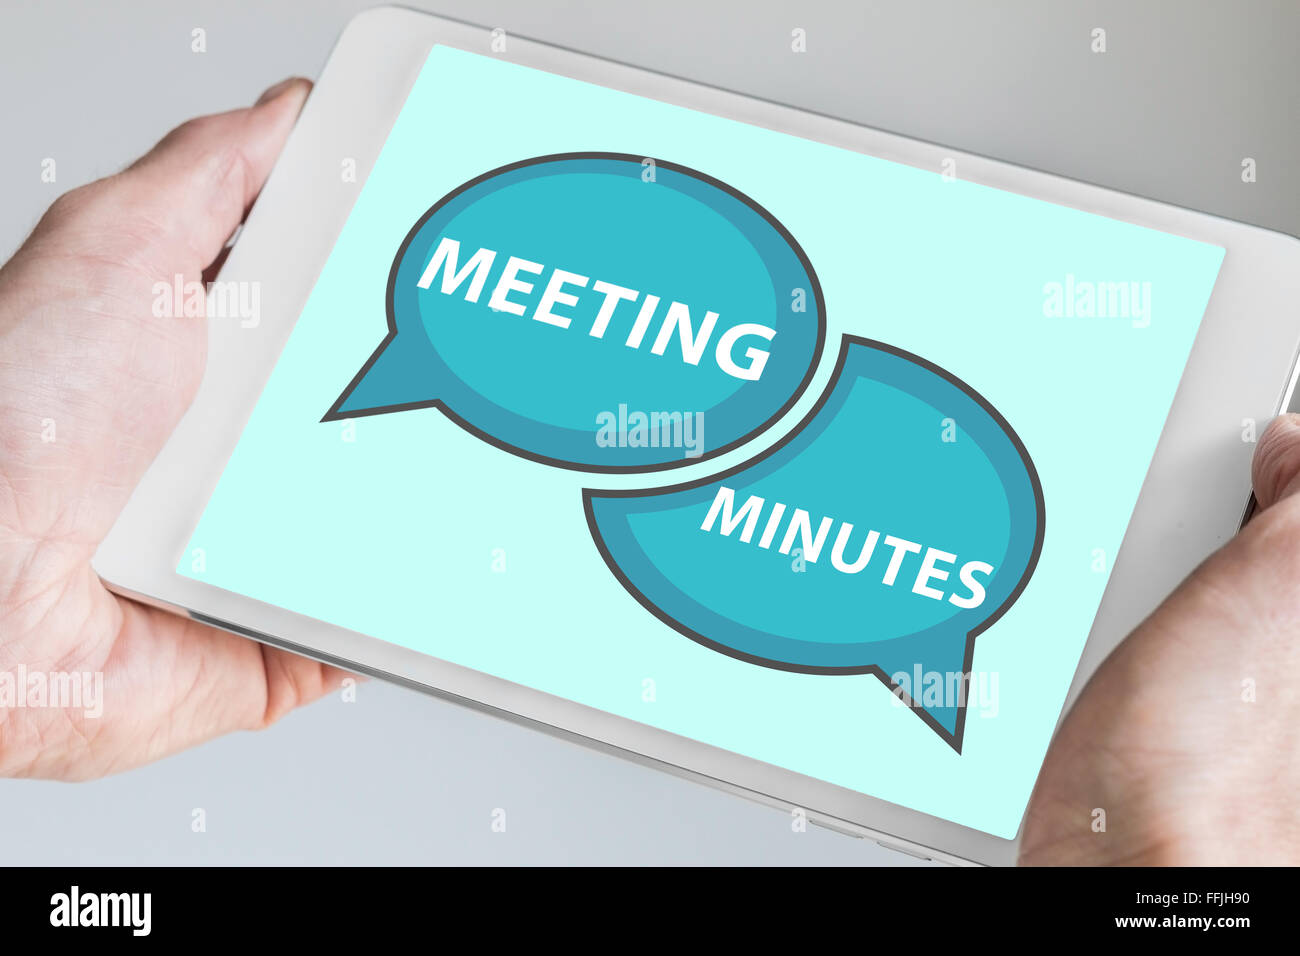 Meeting minutes concept with hands holding modern tablet or smartphone to be used as slide background - Stock Image